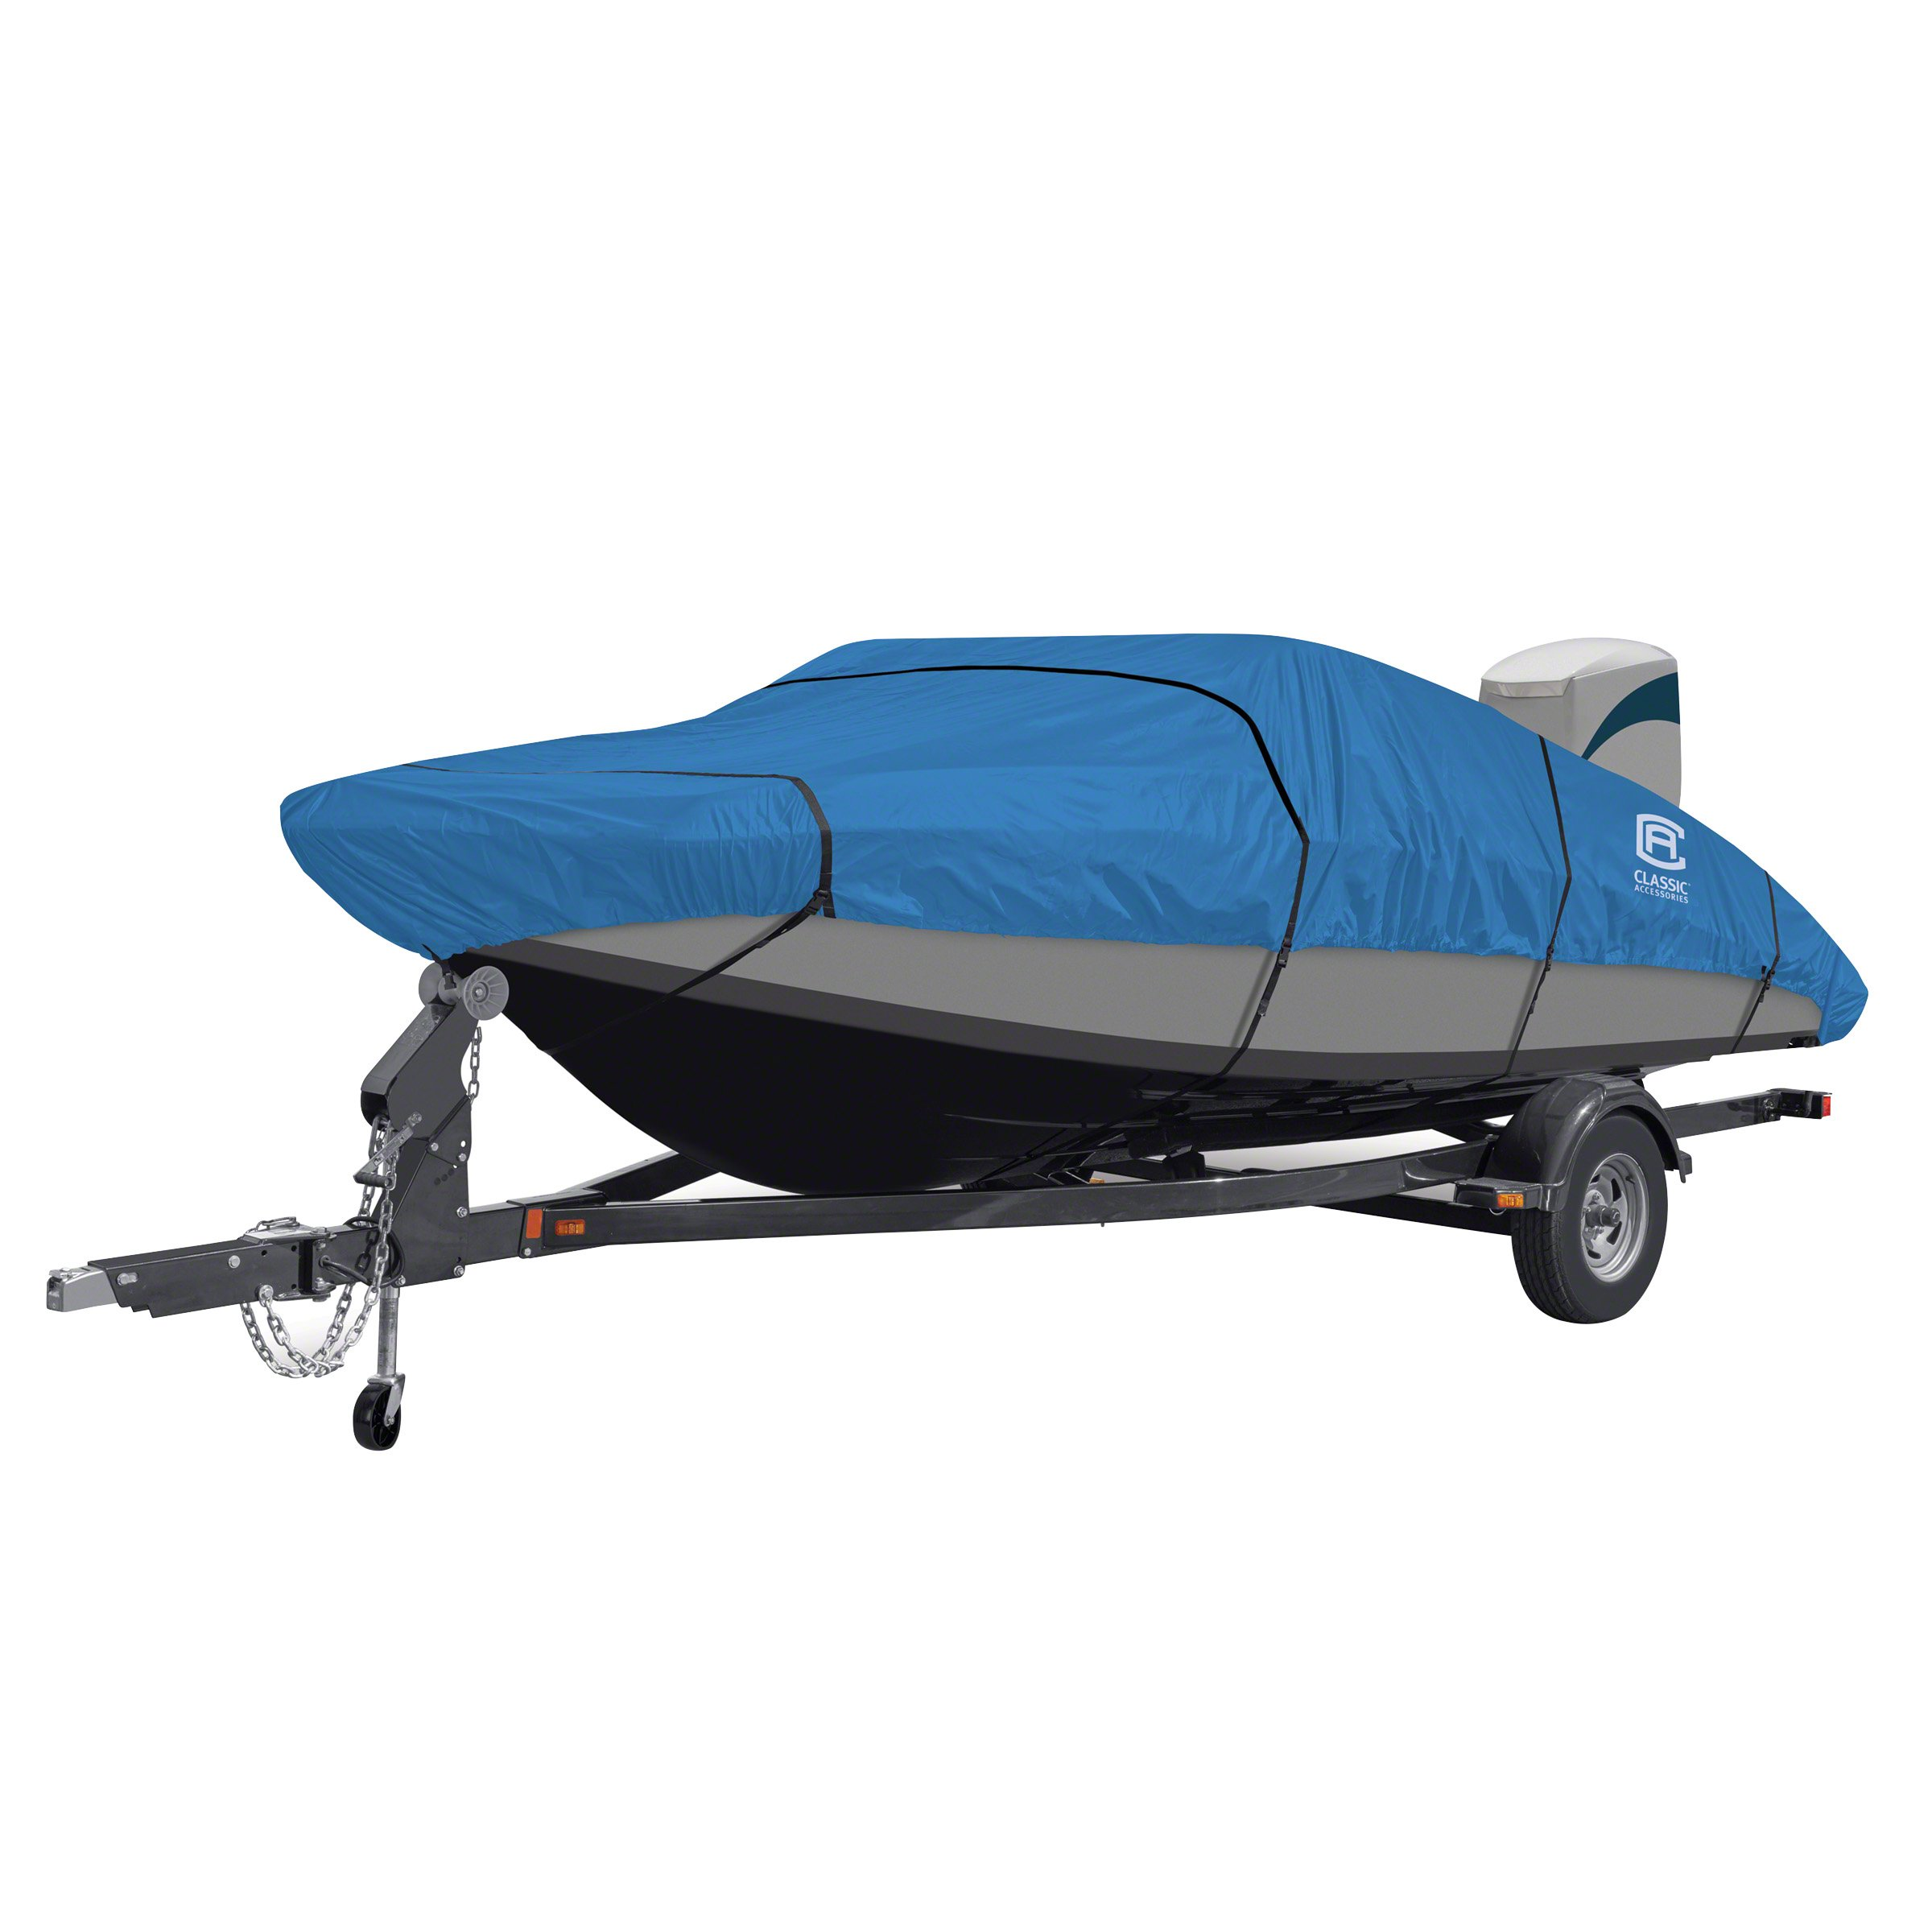 Classic Accessories Stellex Boat Cover For Utility/Fishing Boats, 12' - 14' L, Up to 68'' W by Classic Accessories